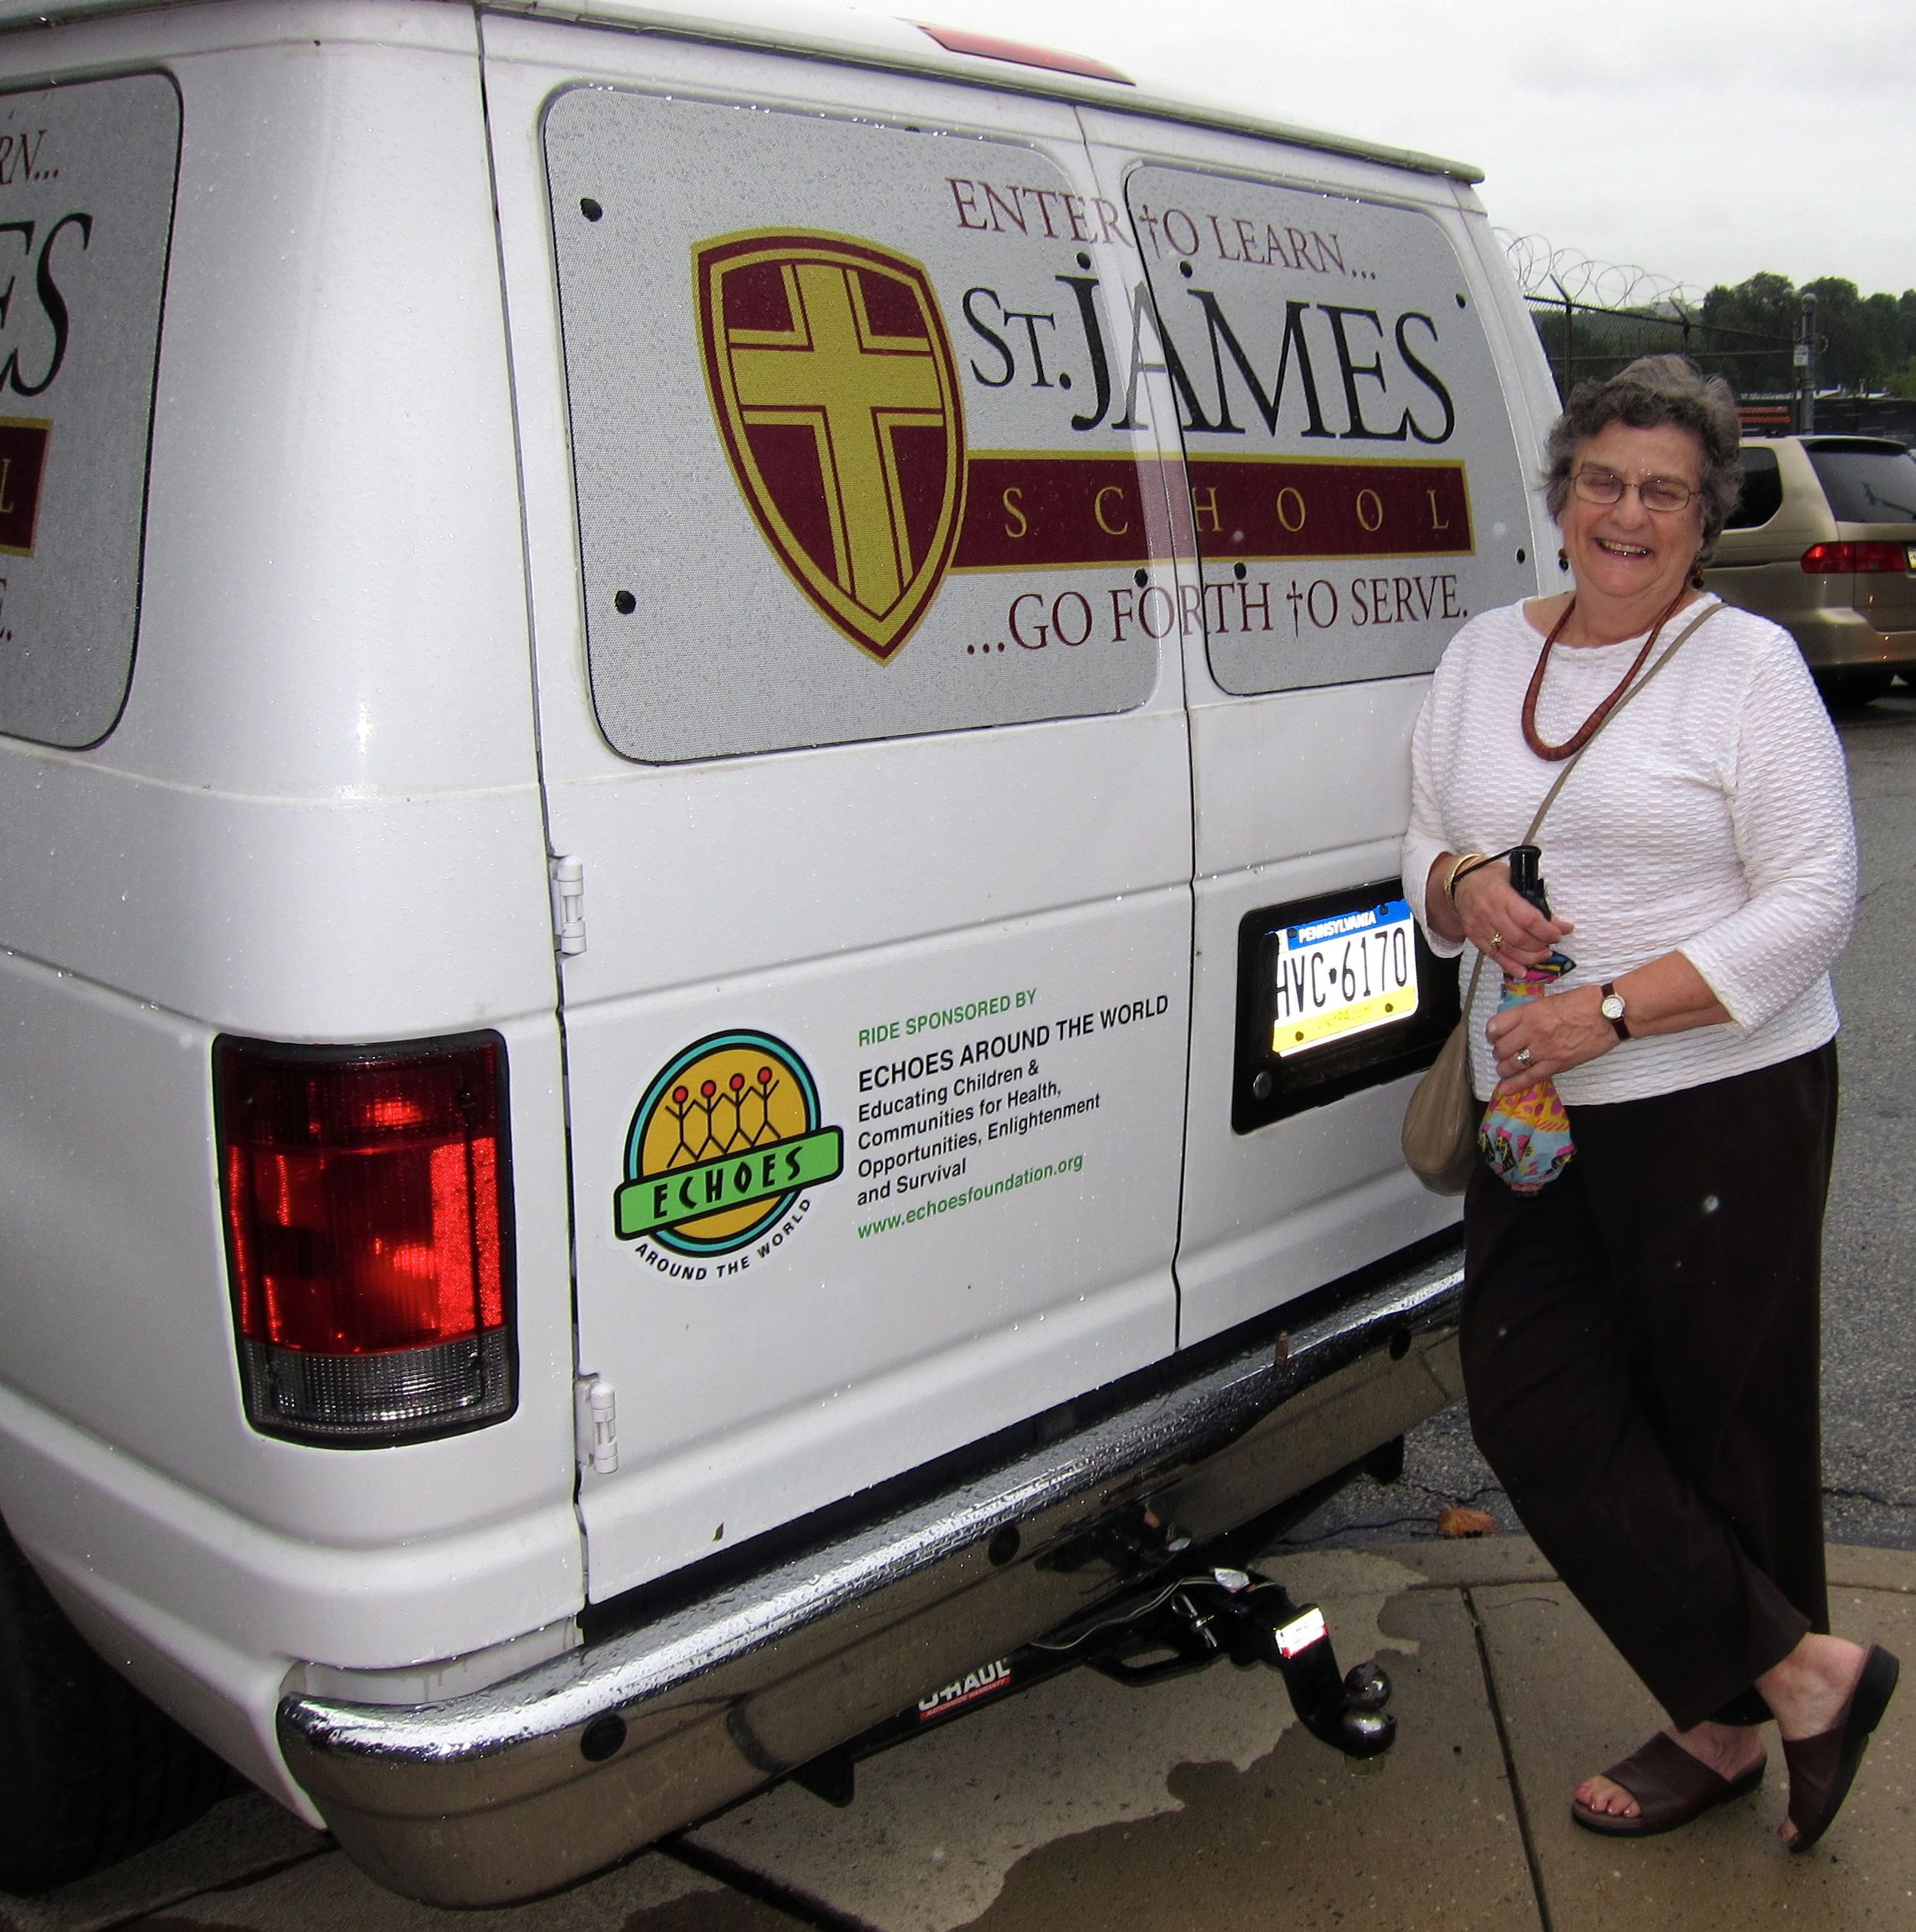 ECHOES co-founder Nereida Gordon stands by the van ECHOES donated to St. James School in North Philadelphia.